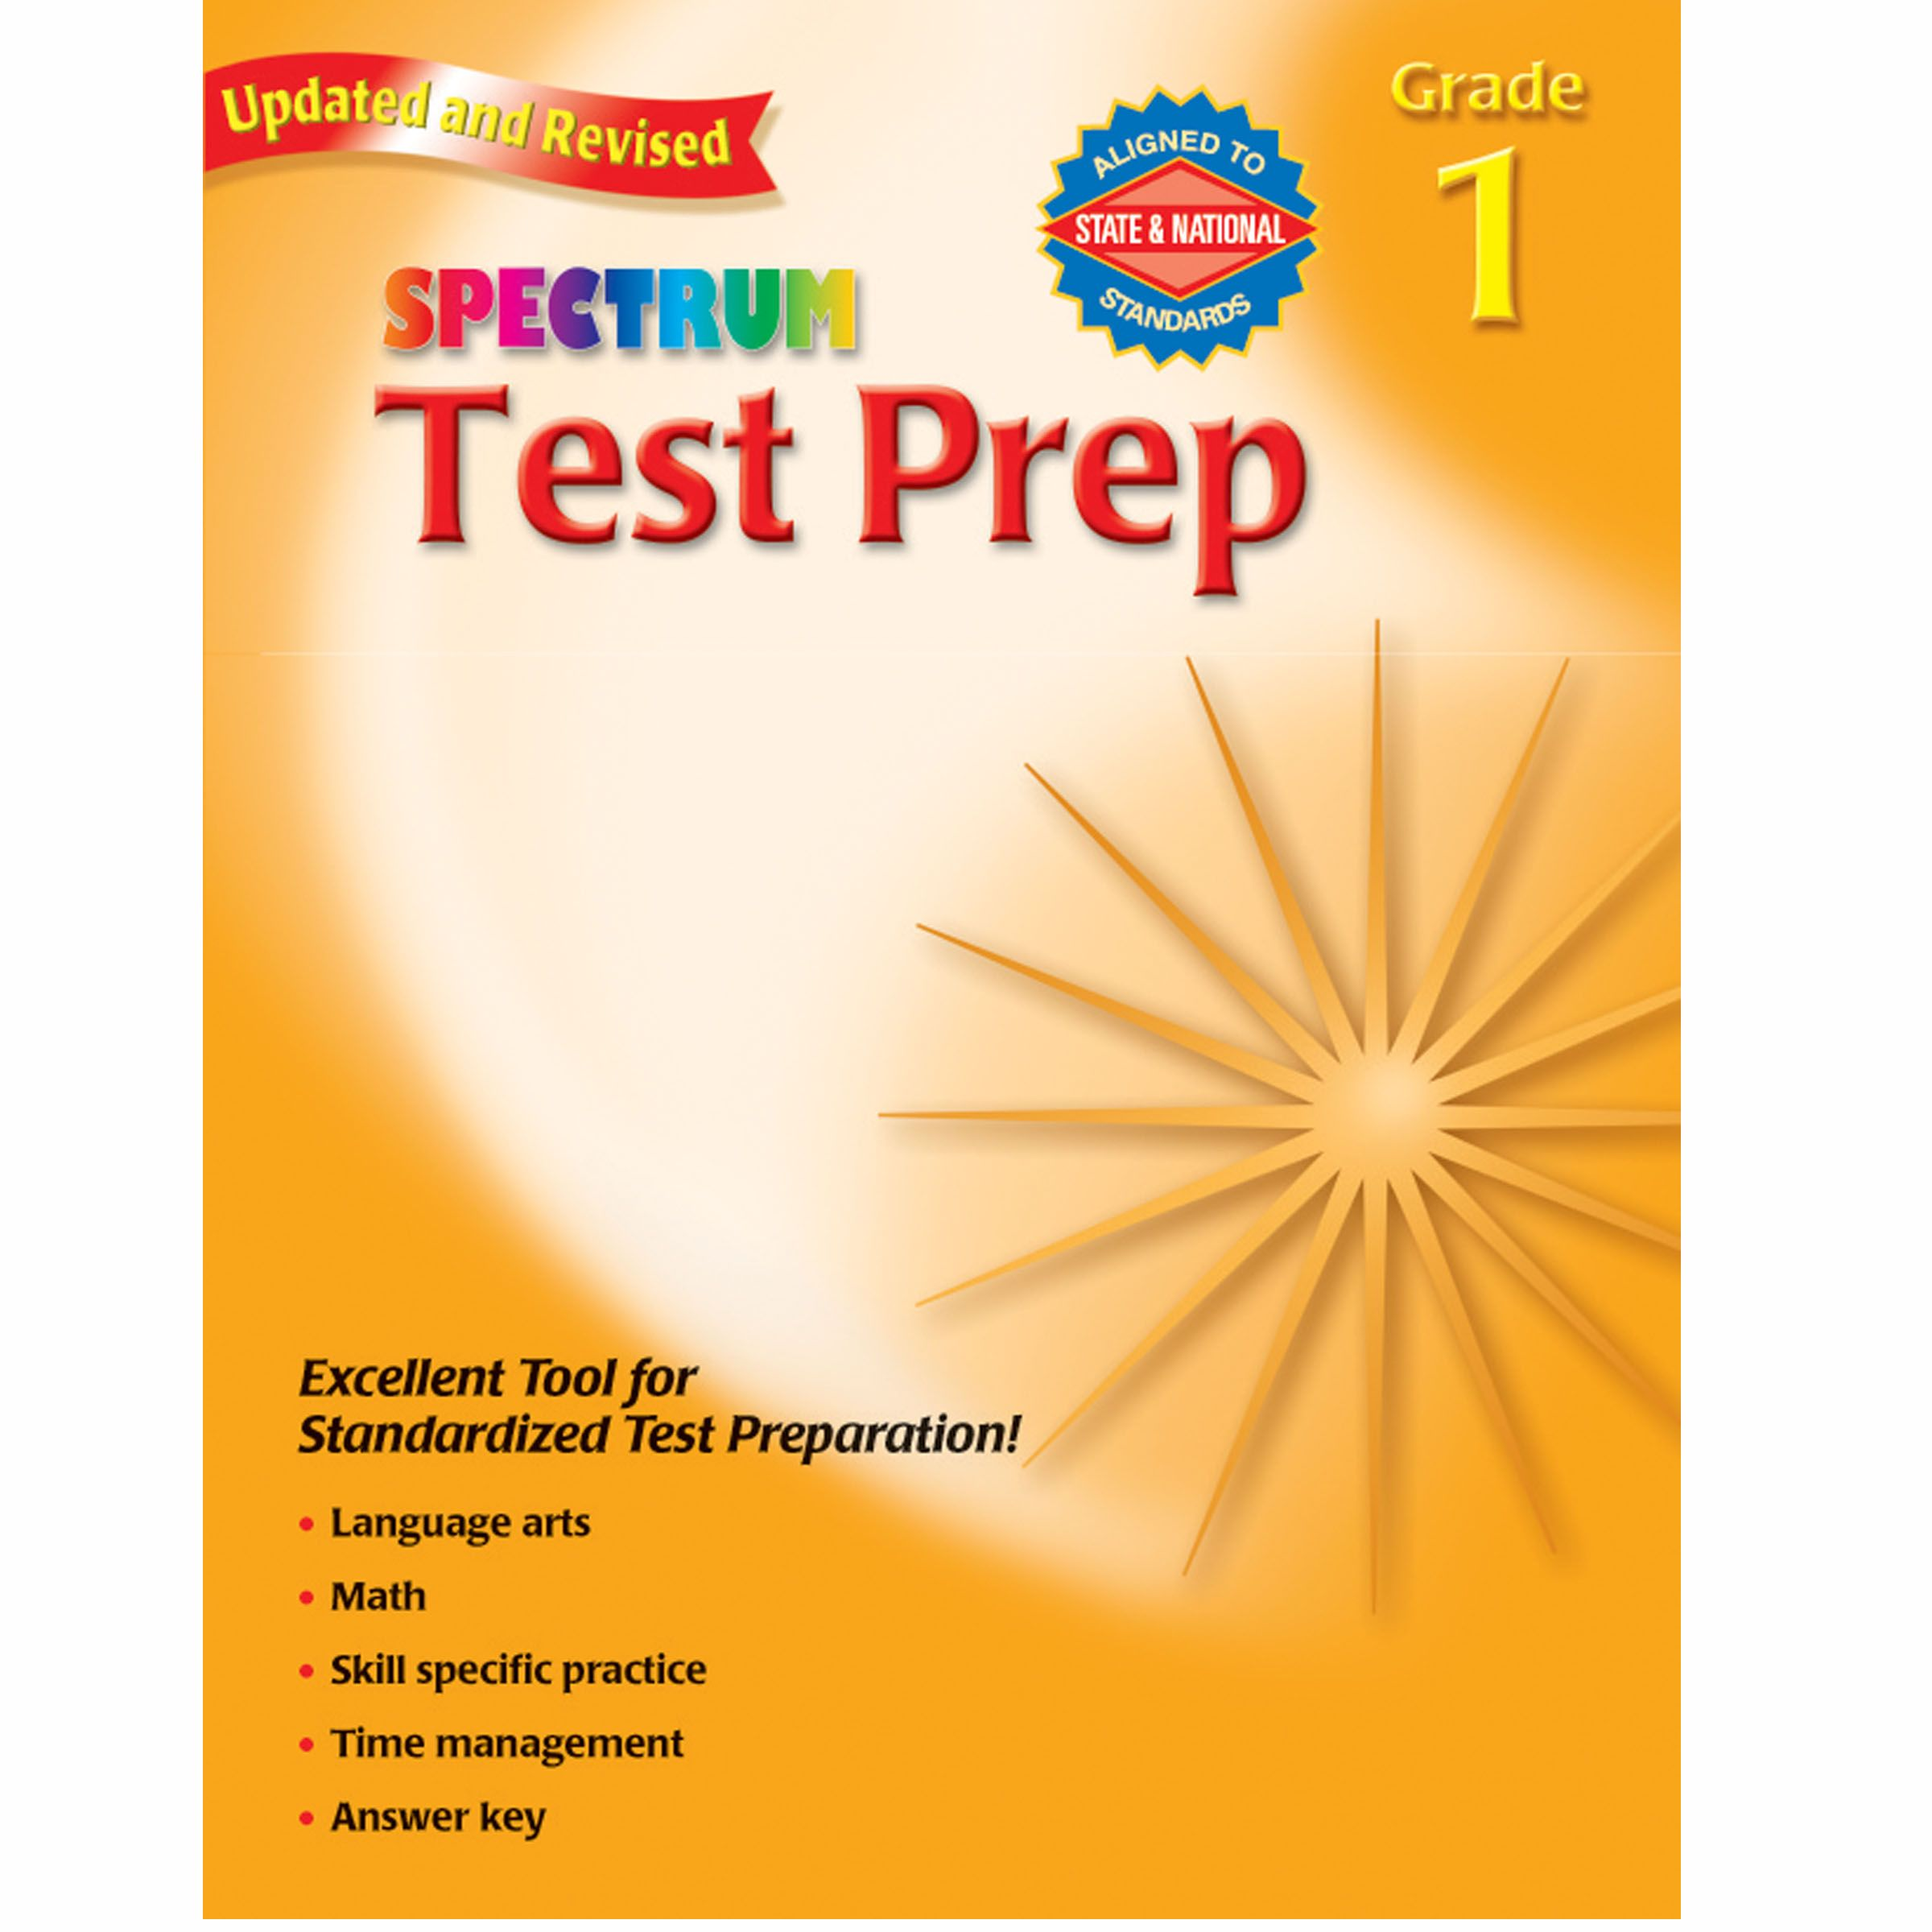 The Award Winning Spectrum Series Test Prep Books Are Available For